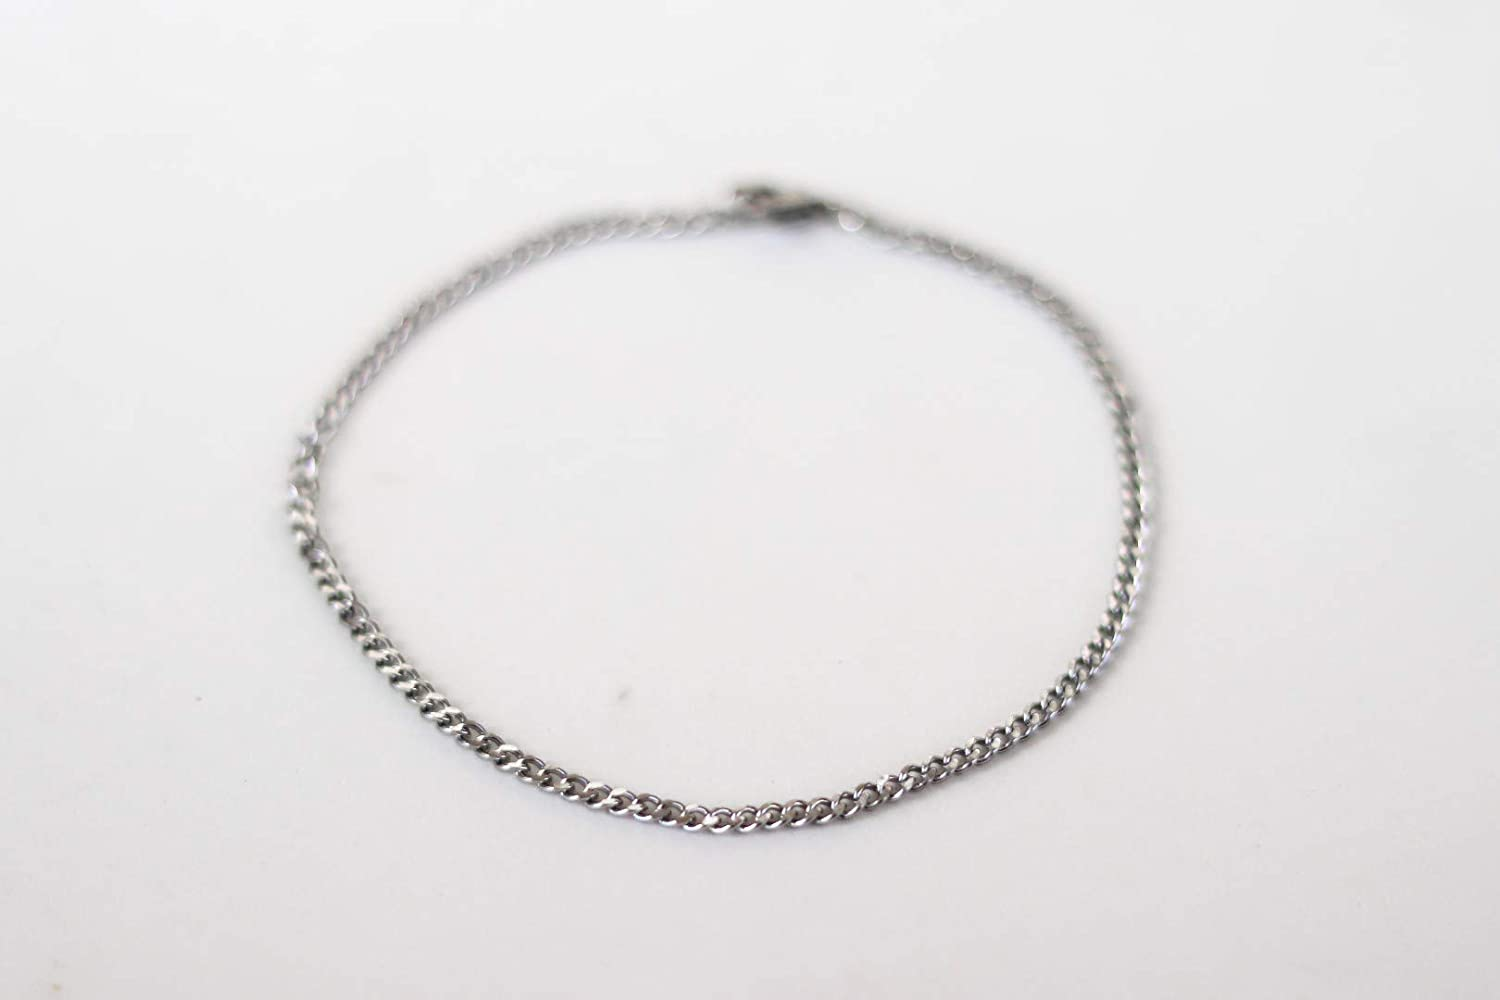 minimalist anklet mens jewelry mans ankle bracelet Anklet for men gift for him Silver links chain anklet cable cuban chain